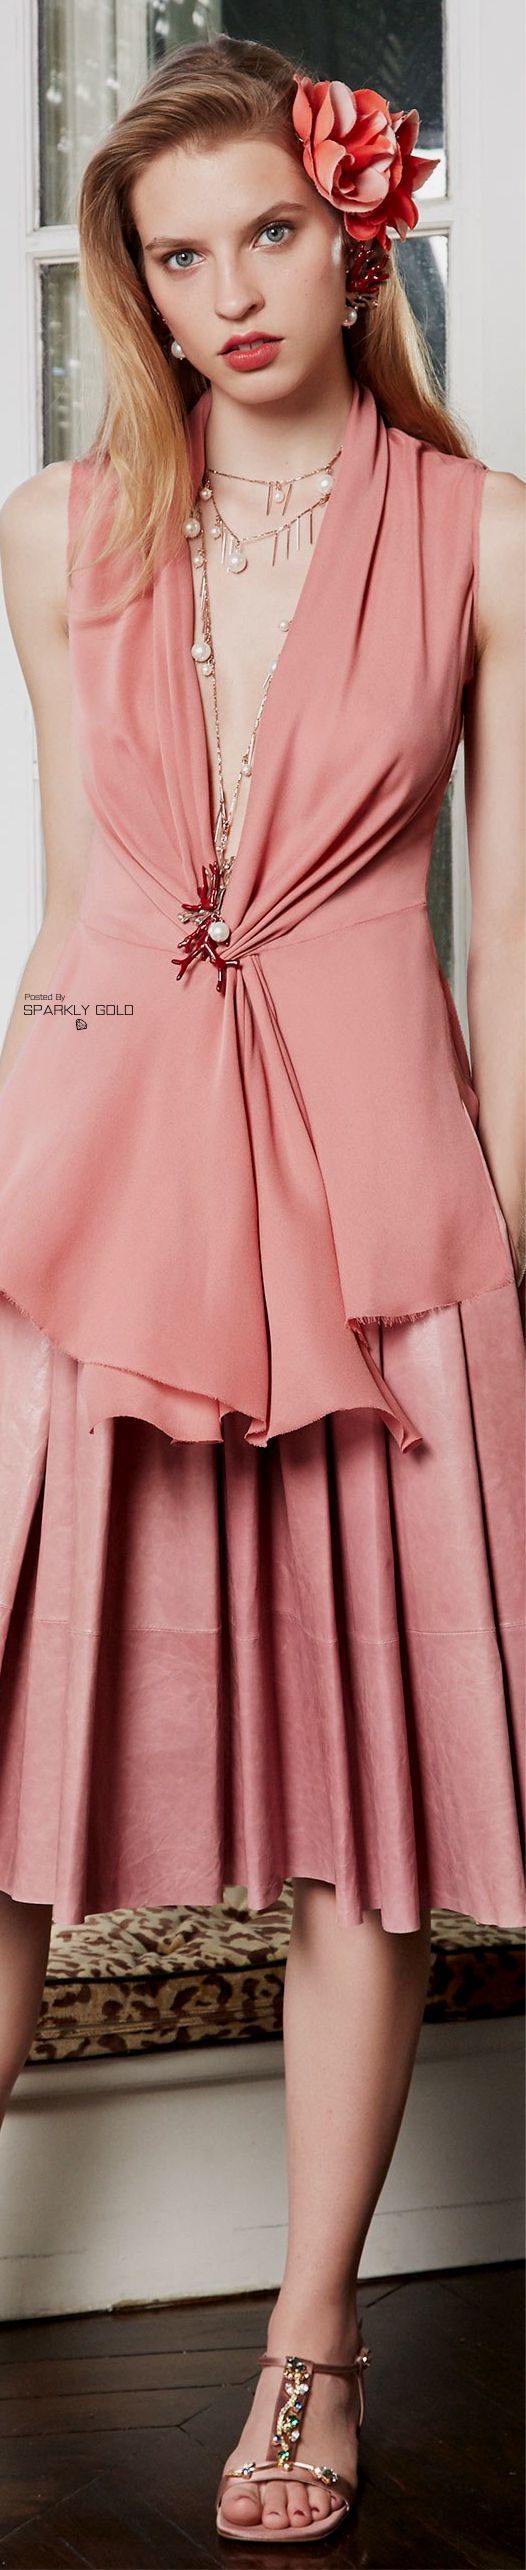 Paule K Resort 2018 | ❥❥❥ Trends ❥ 2018 | Pinterest | Vestidos ...